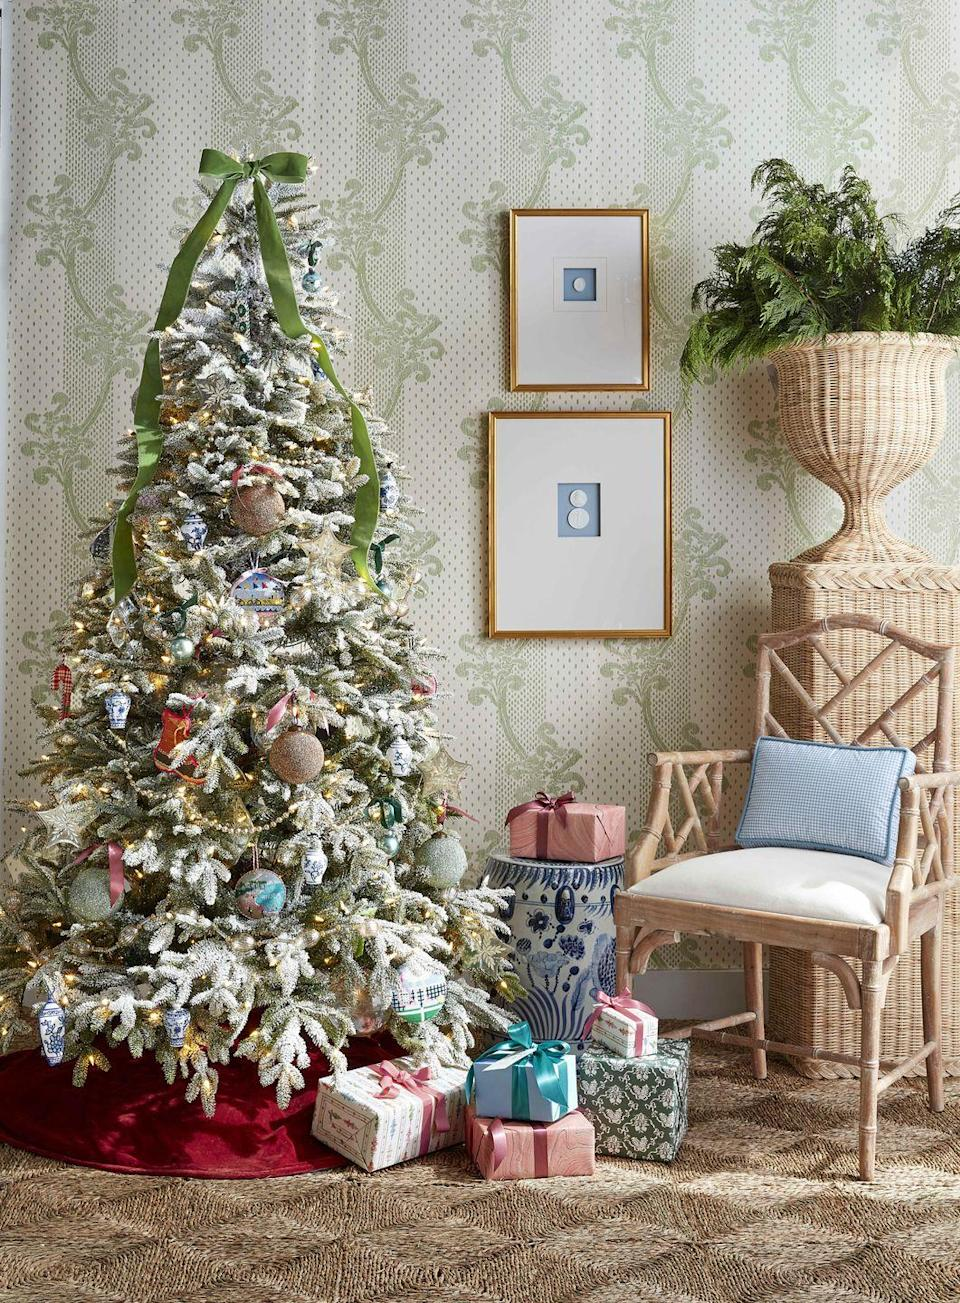 """<p>If the soft tones of pastels and velvet and estate sale–esque heirlooms like mercury glass, ginger jars, and needlepoints make your heart sing, then a grandmillenial-inspired Christmas tree is just what your home needs to feel festive and bright this holiday season. For a prim and proper topper, make a velvet bow from two-inch ribbon. Tie it just as you would shoelaces to evoke an effortlessly chic French-girl vibe. Let the ends flow a third of the way down the tree, and trim at an angle.</p><p><a class=""""link rapid-noclick-resp"""" href=""""https://www.amazon.com/s?k=velvet+ribbon&ref=nb_sb_noss_2&tag=syn-yahoo-20&ascsubtag=%5Bartid%7C10050.g.28703522%5Bsrc%7Cyahoo-us"""" rel=""""nofollow noopener"""" target=""""_blank"""" data-ylk=""""slk:SHOP VELVET RIBBON"""">SHOP VELVET RIBBON</a><br></p>"""